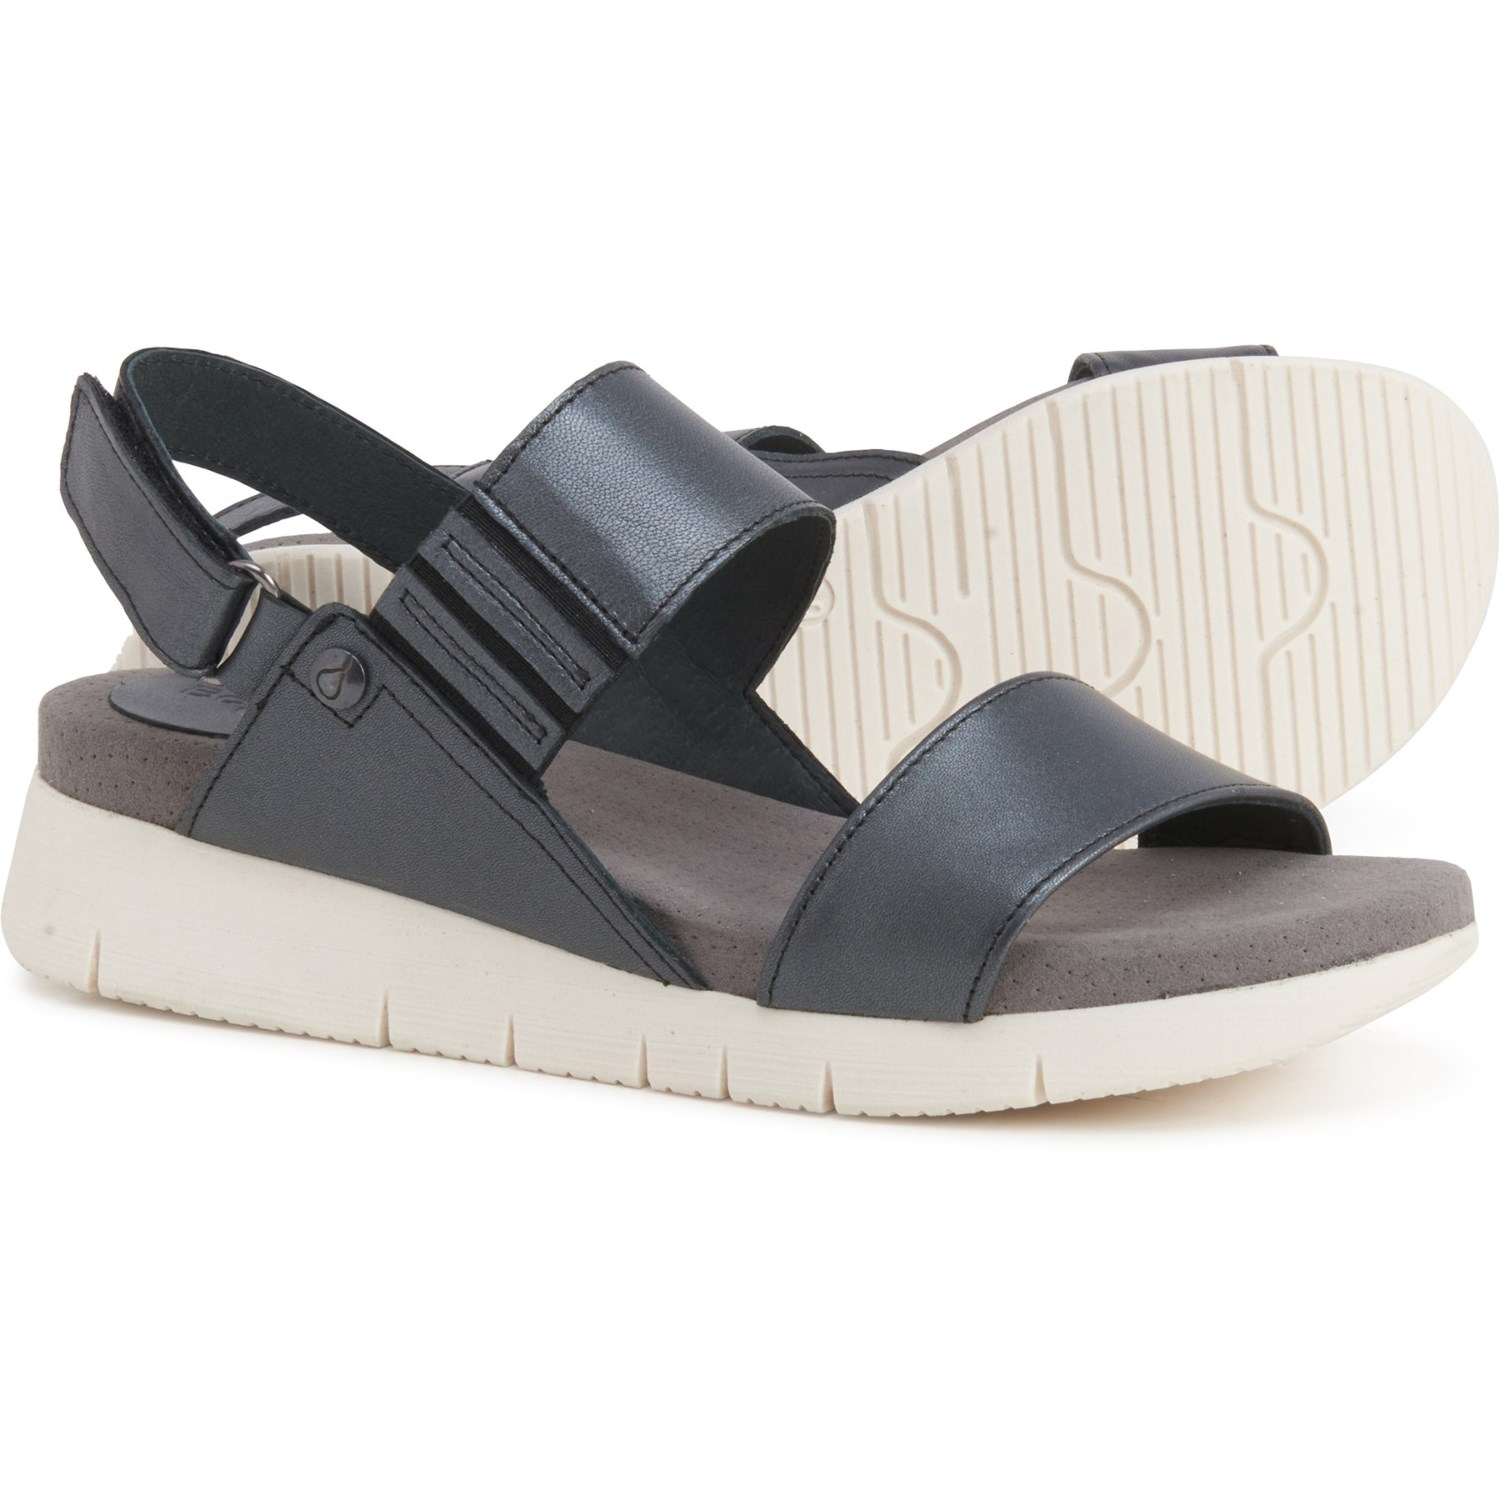 NEW  BOS /& CO PAYGE NAVY SANDALS RETAIL 145 FANTASTIC DEAL AND STYLE